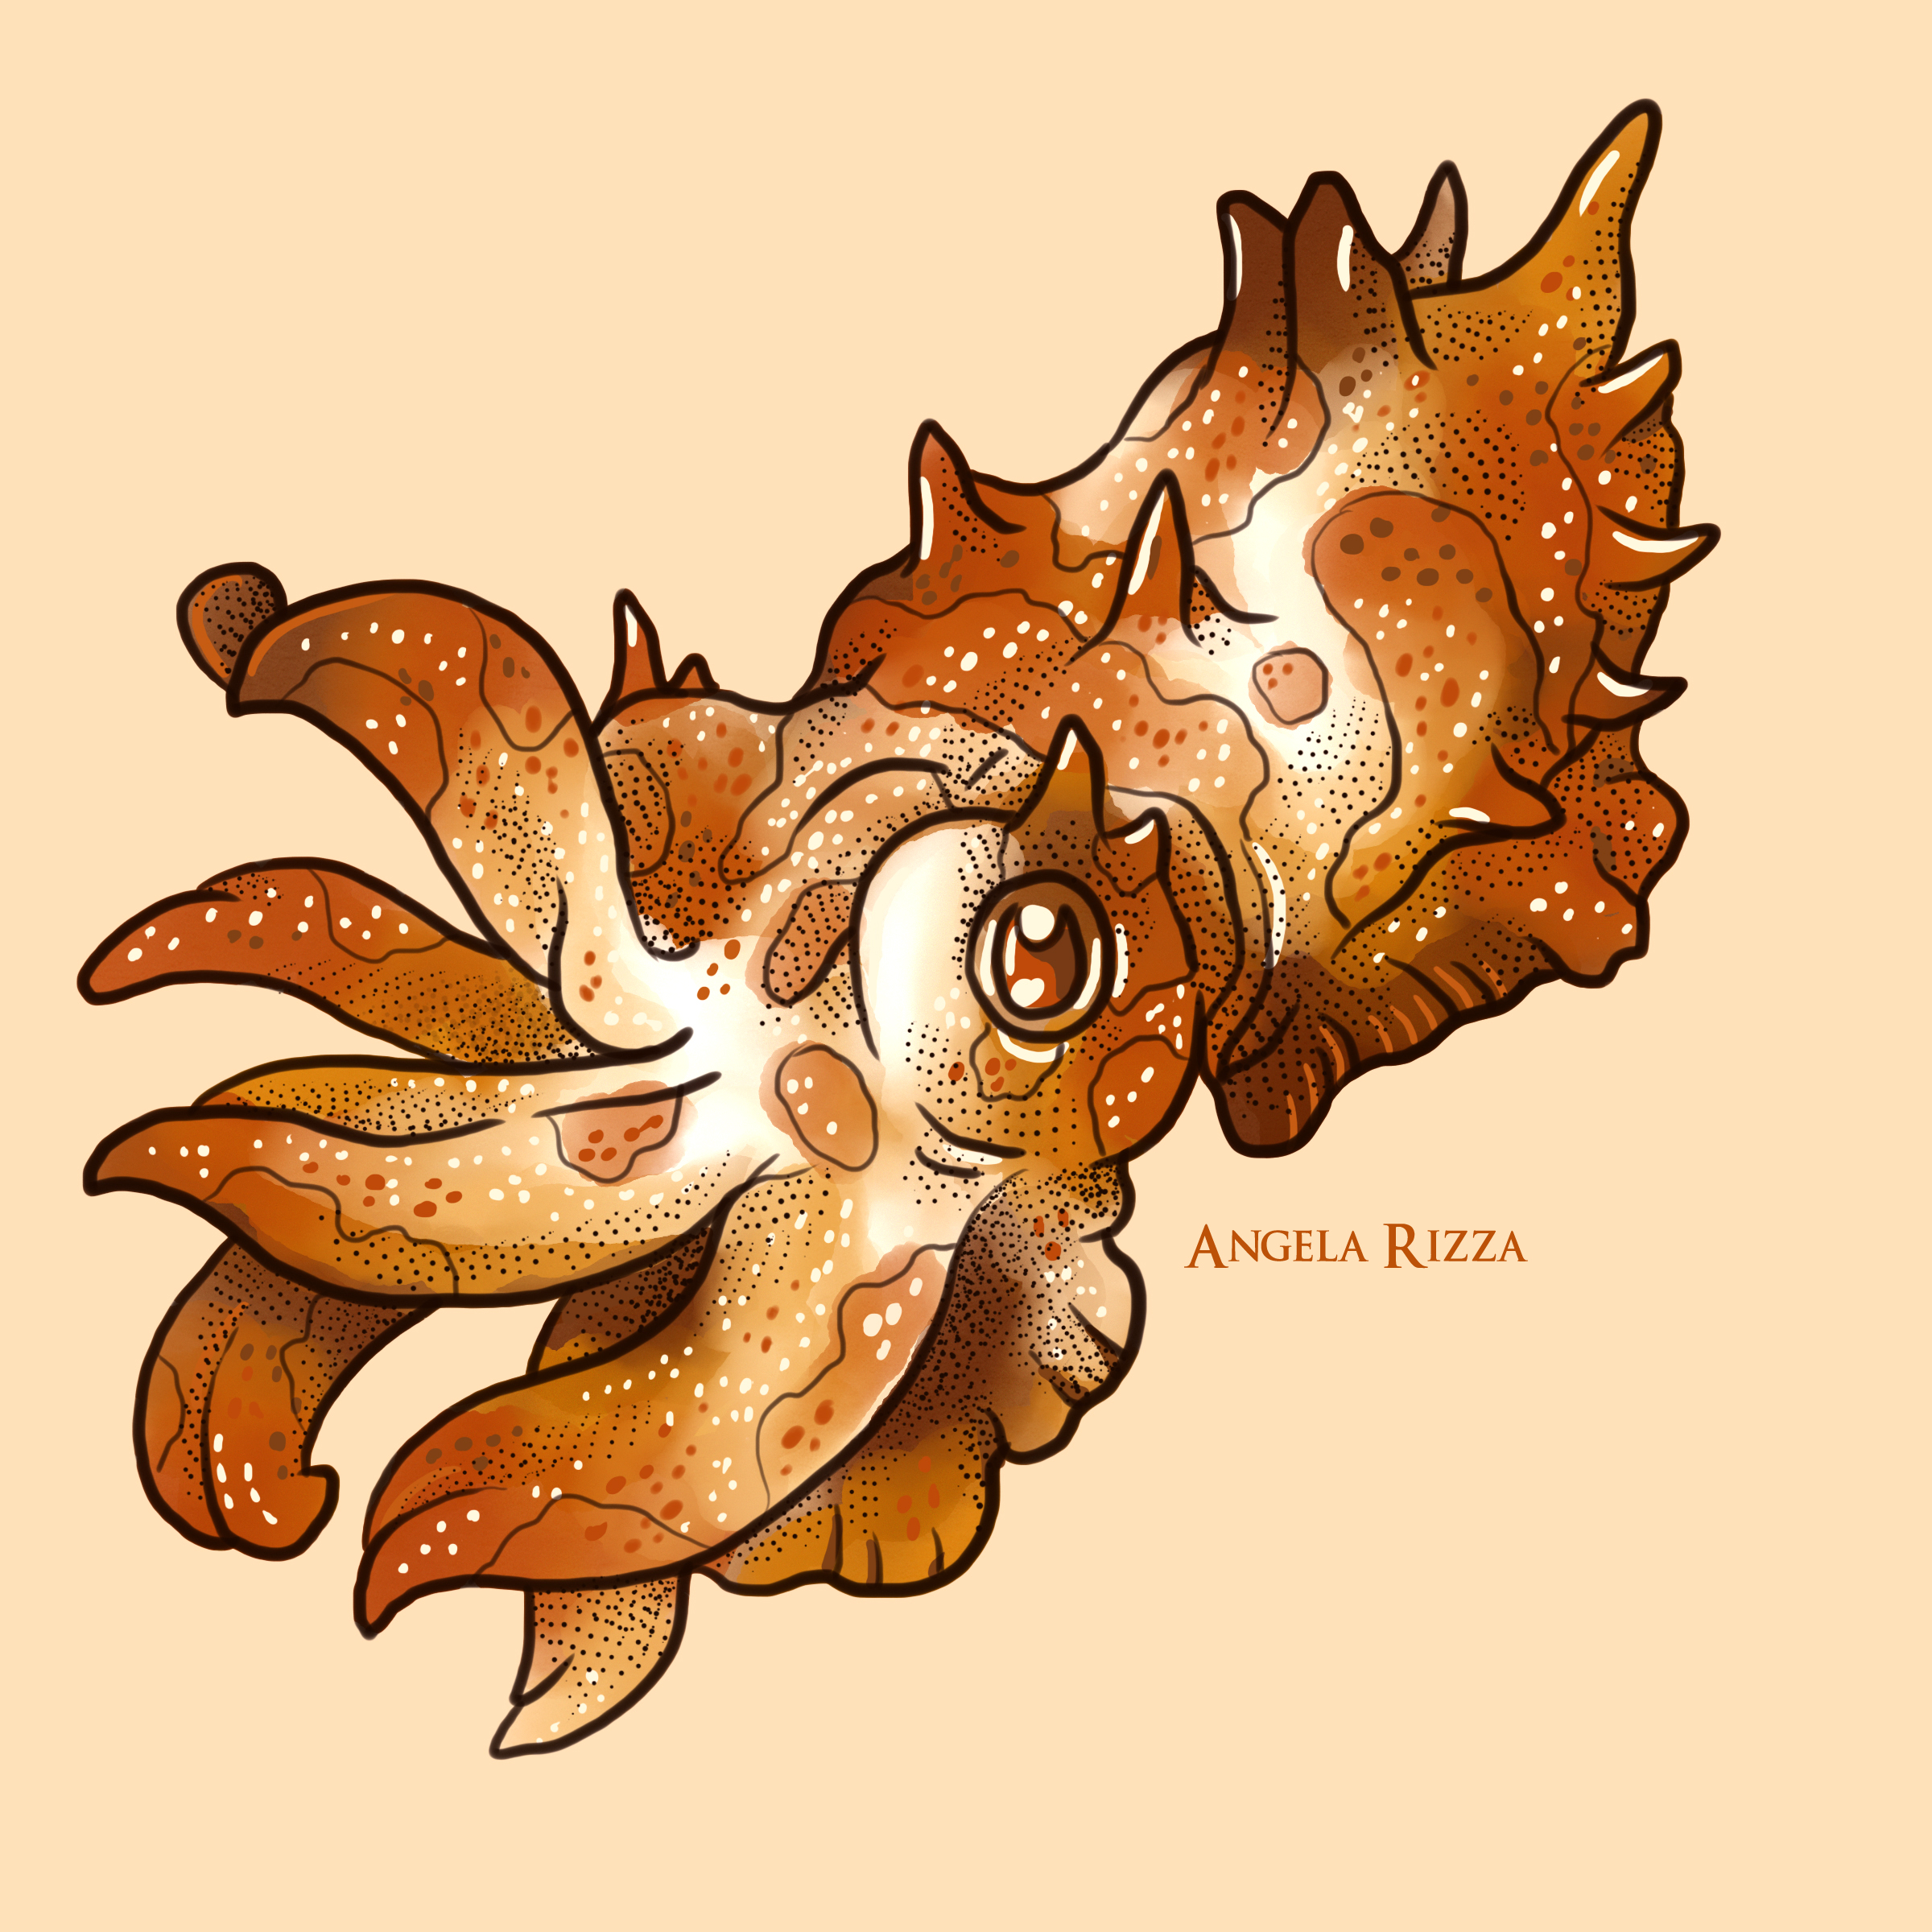 20 tentacle flamboyant Cuttlefish